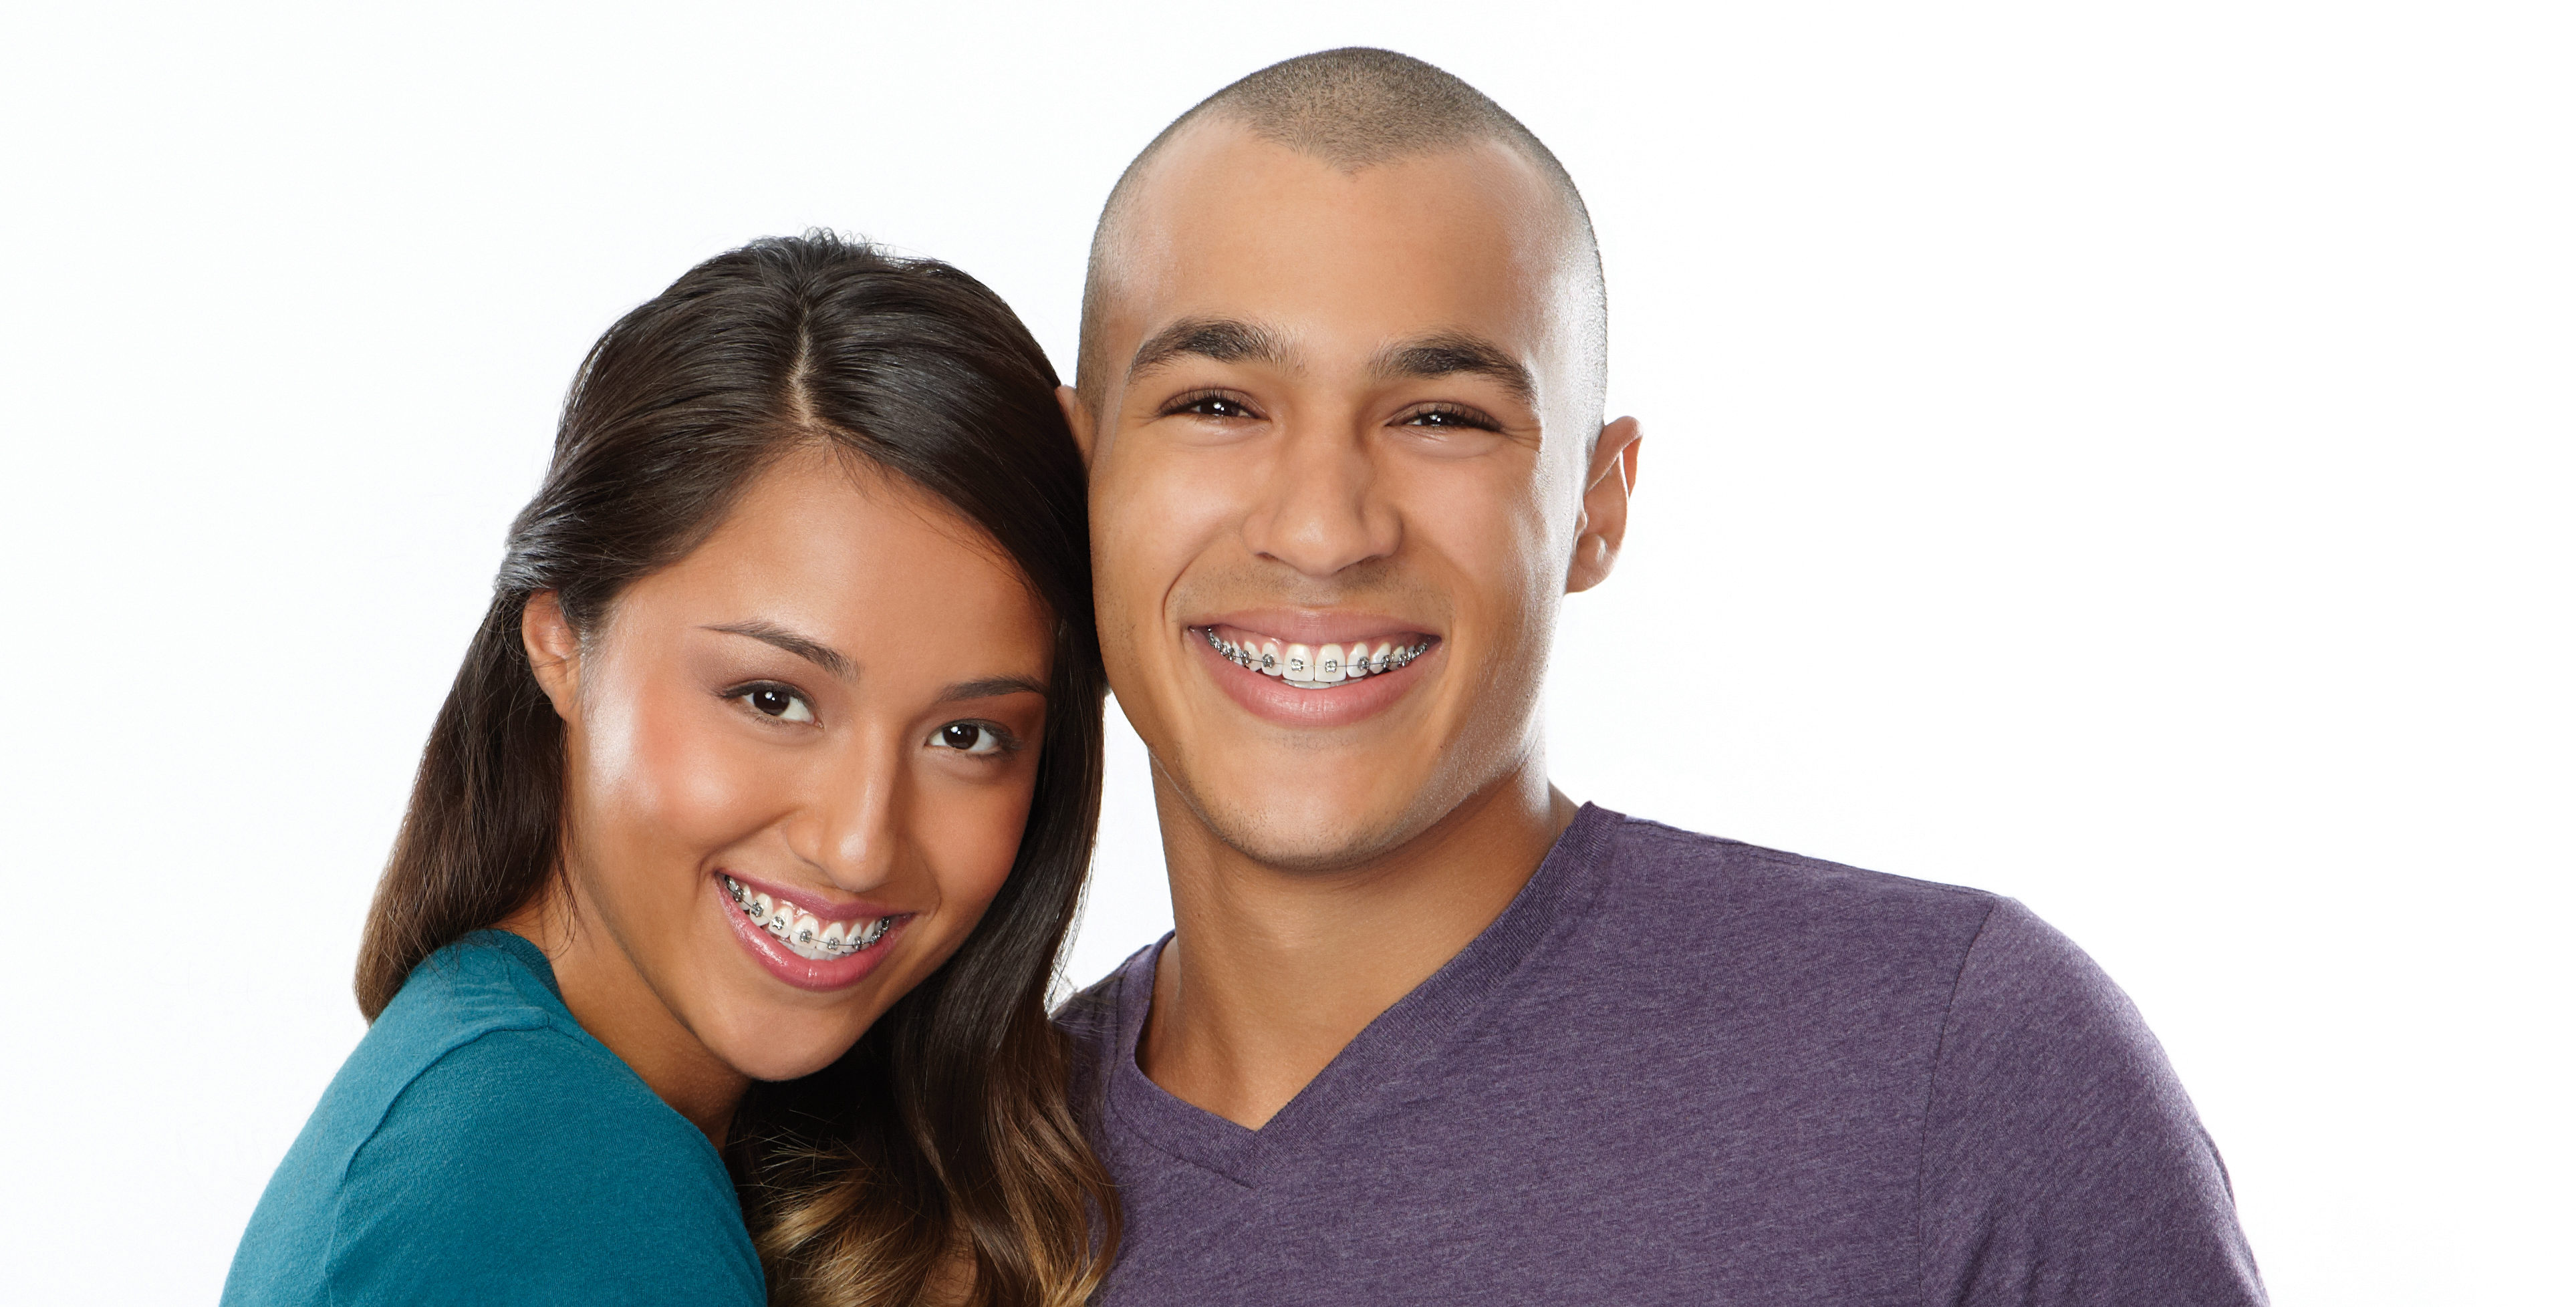 Young couple wearing braces smiling